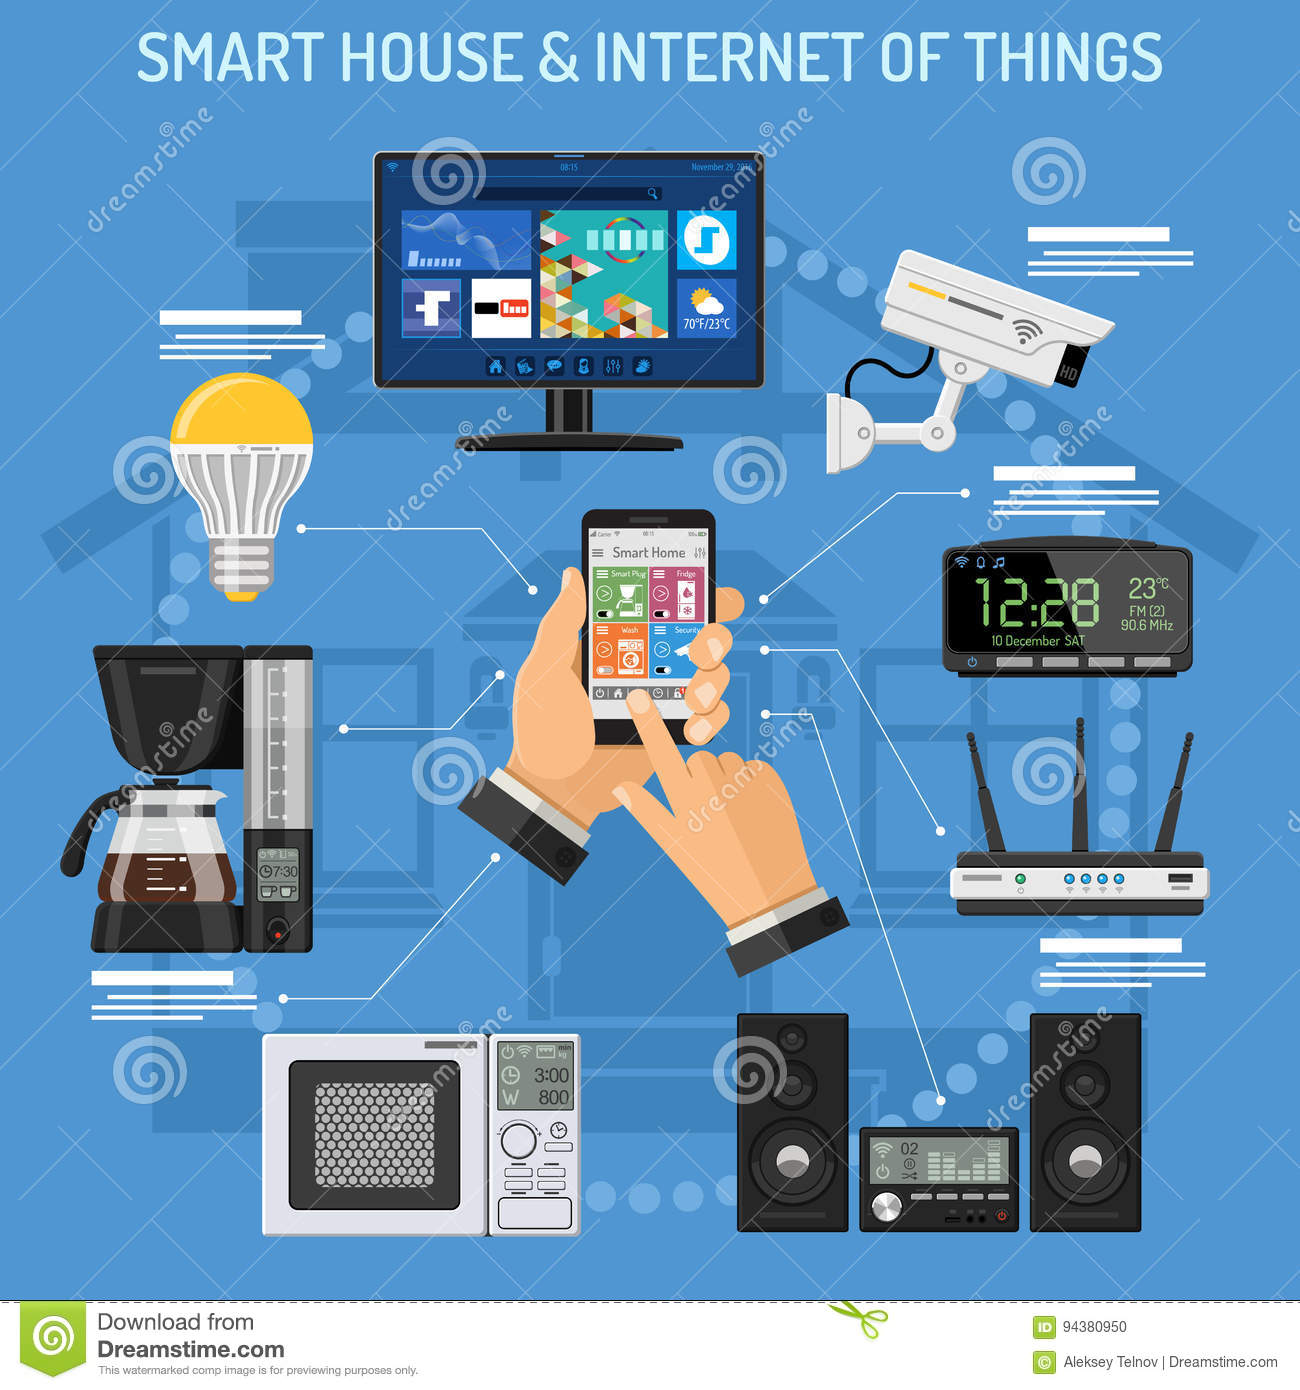 Smart house and internet of things stock vector image for Internet house